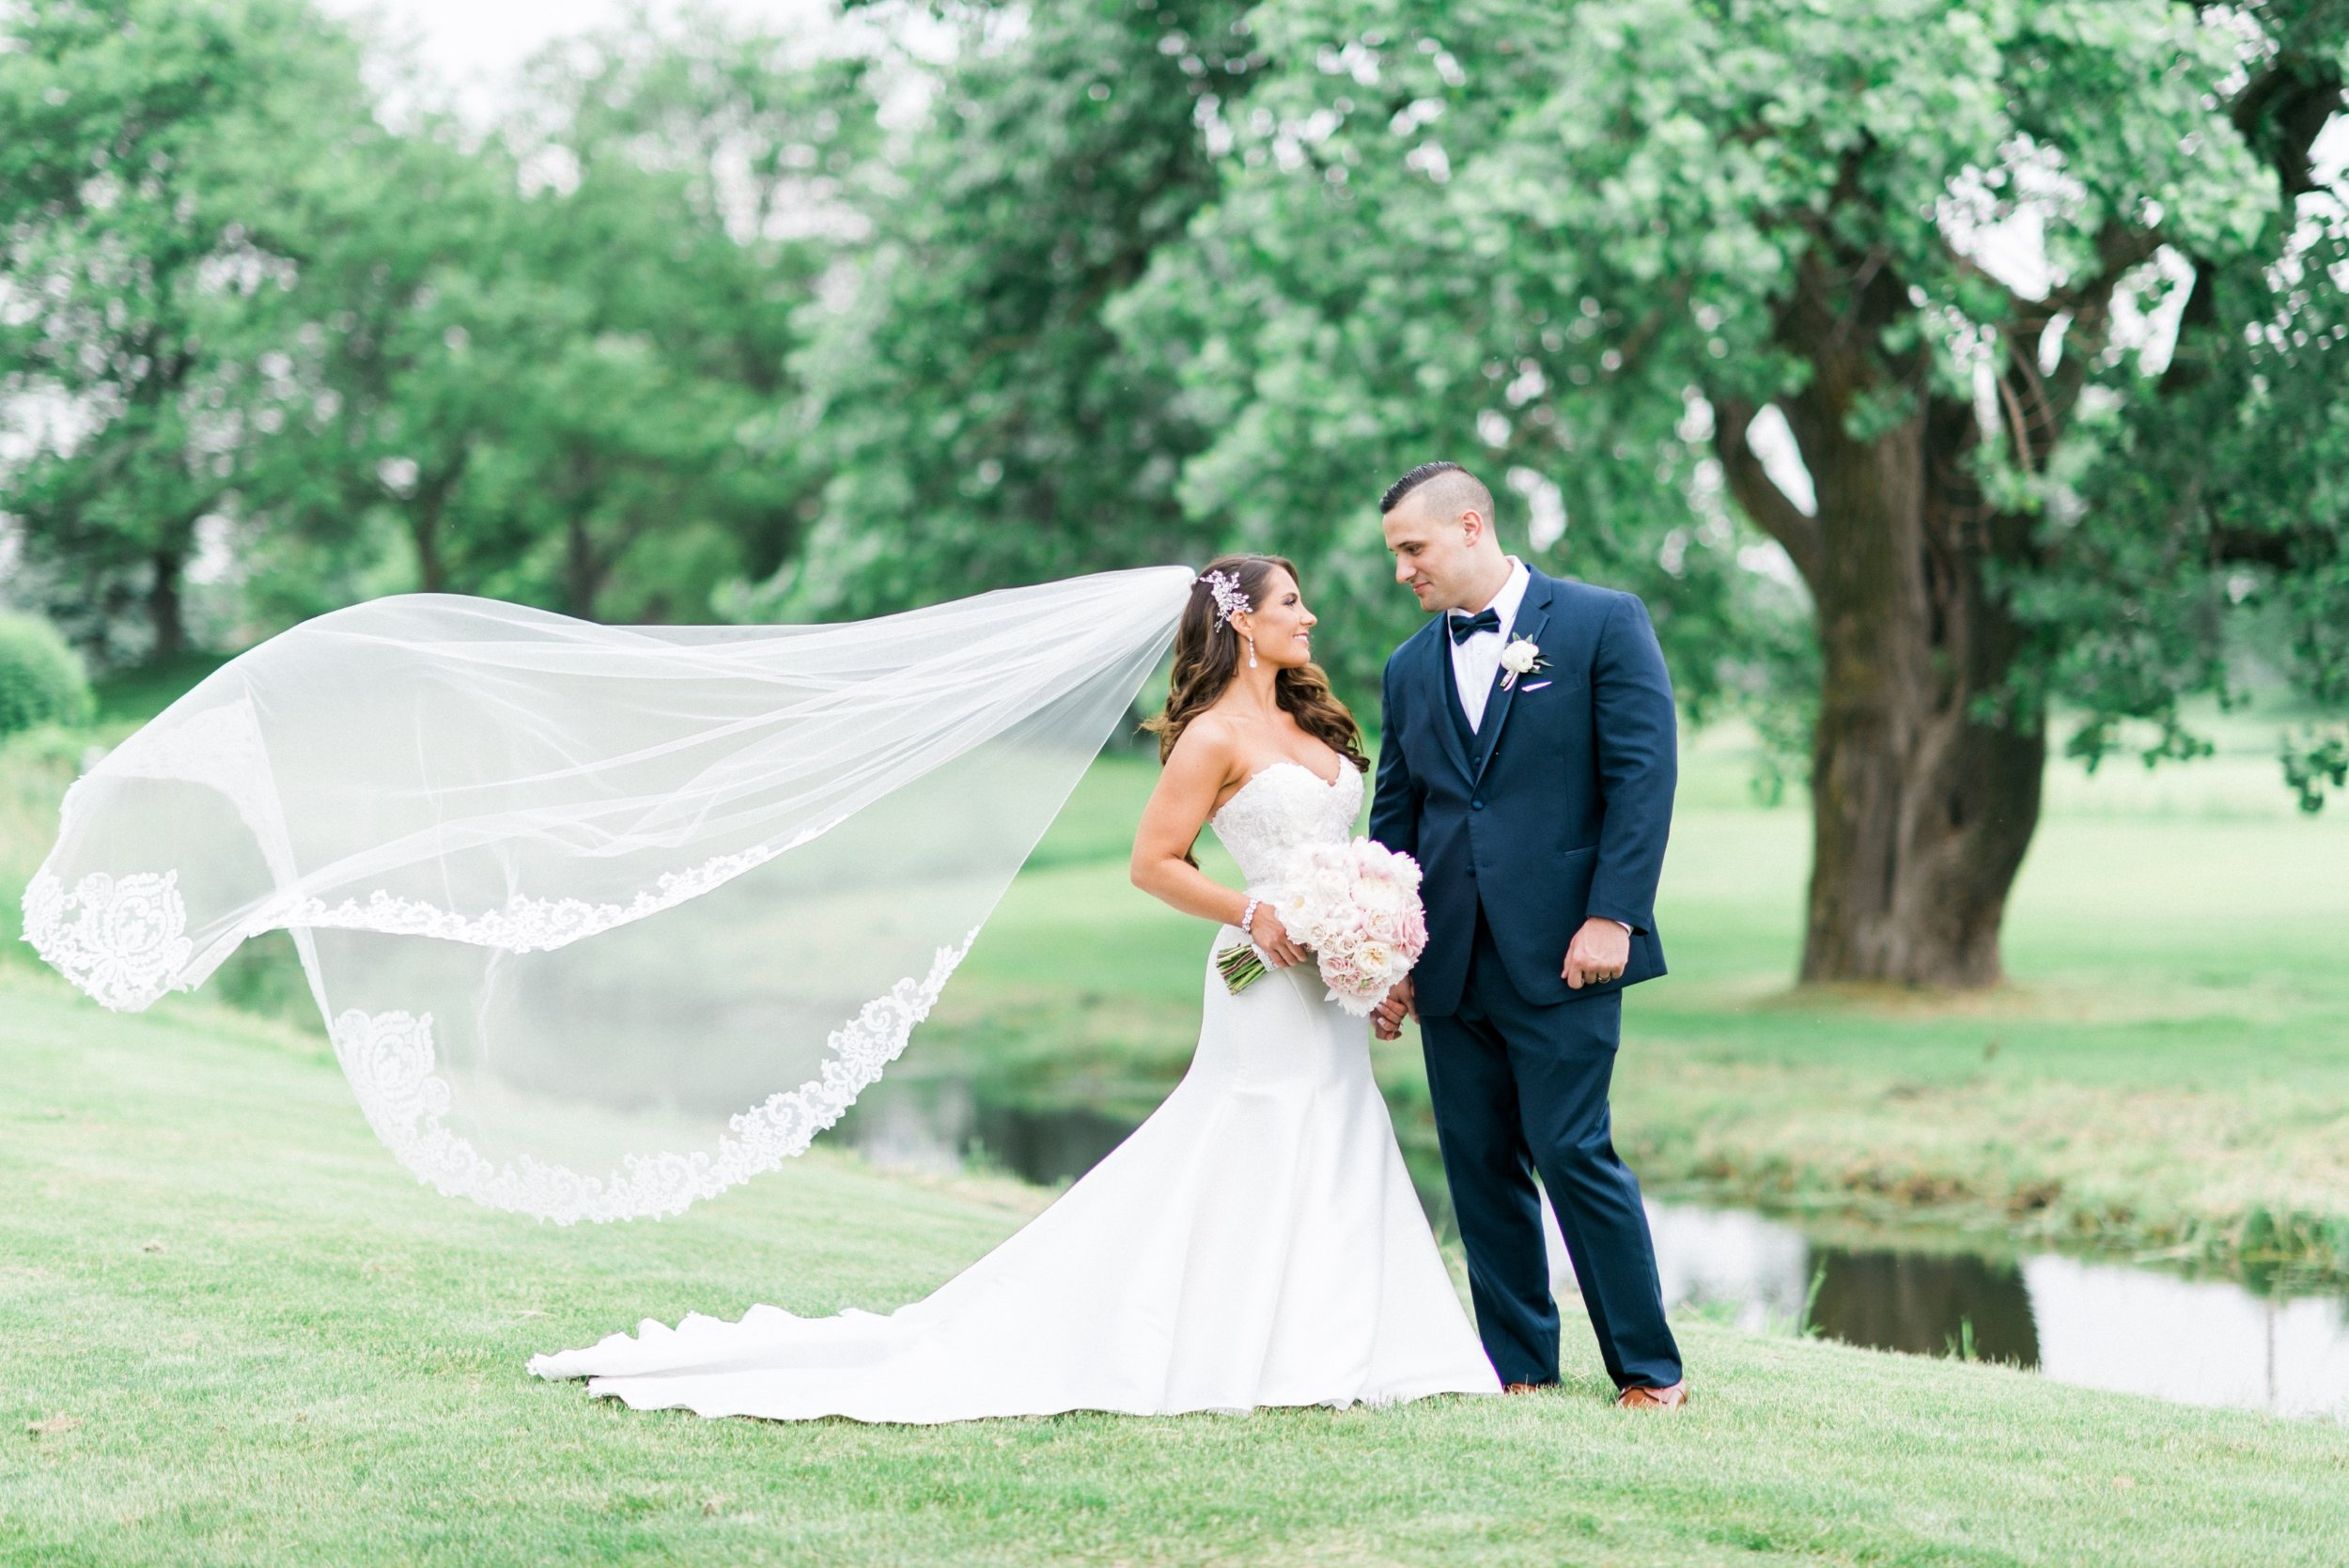 Bride and groom veil shot on golf course.